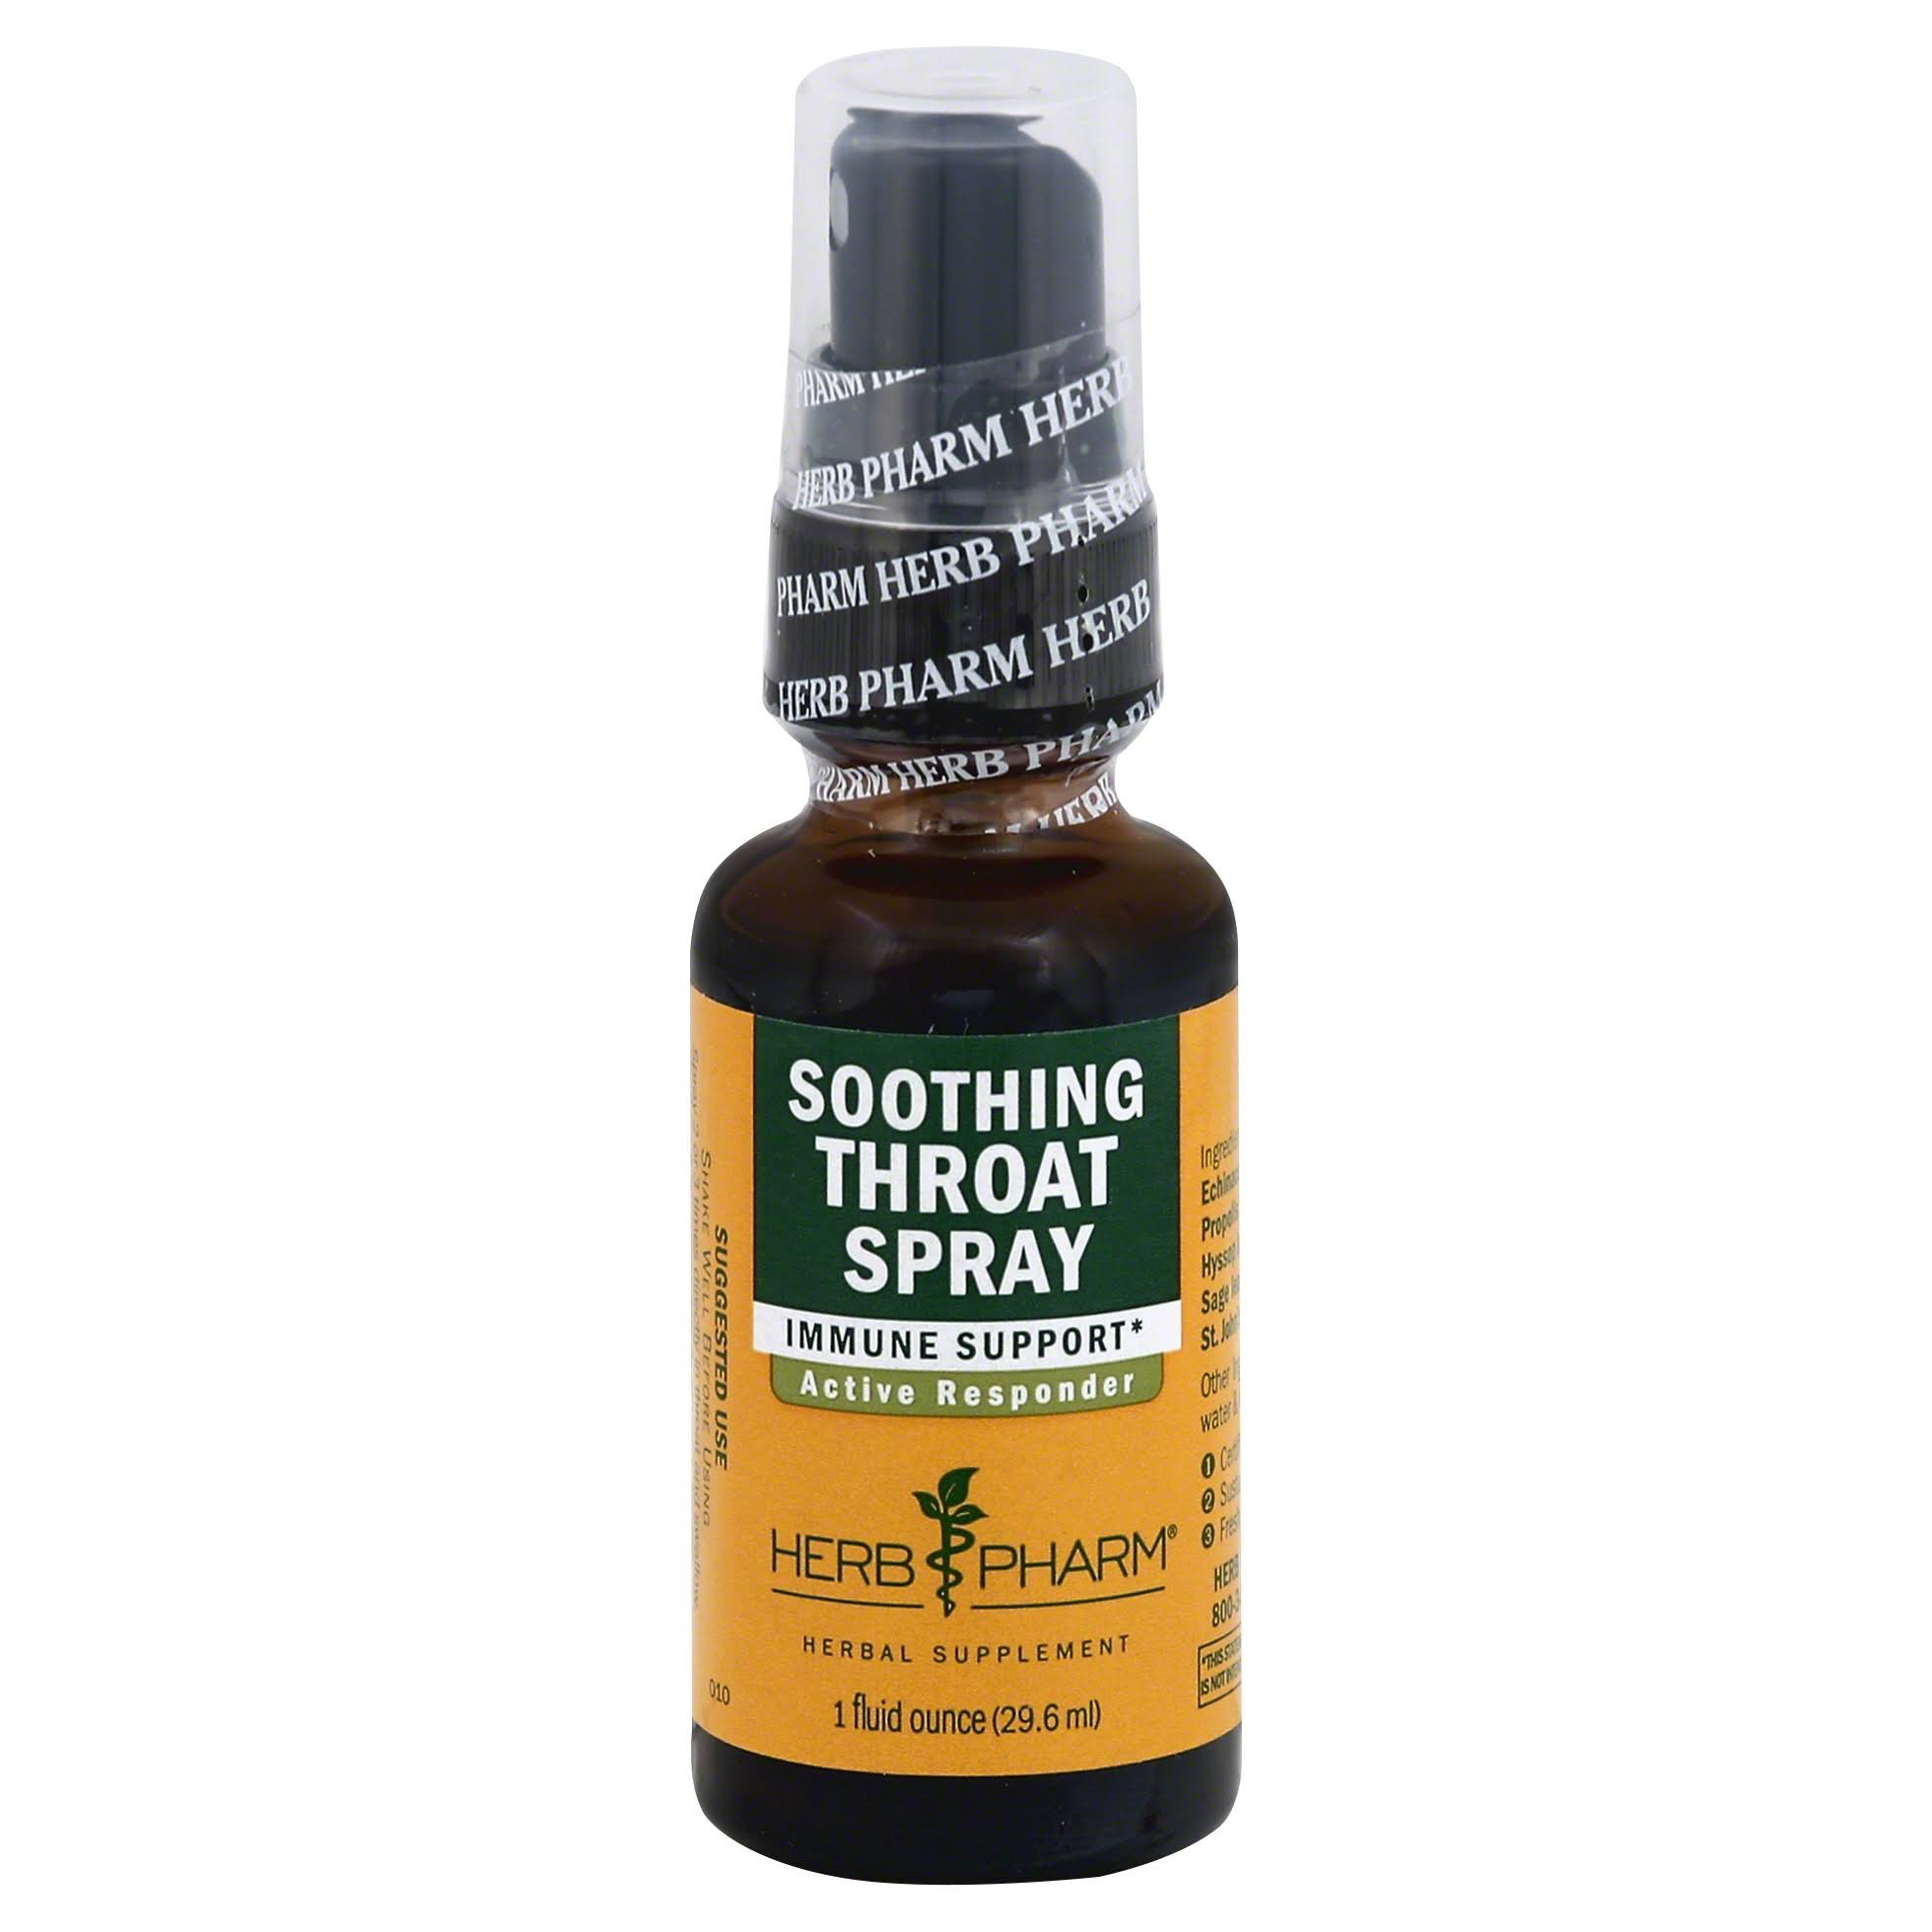 Herb Pharm Soothing Throat Spray - 1 fl oz